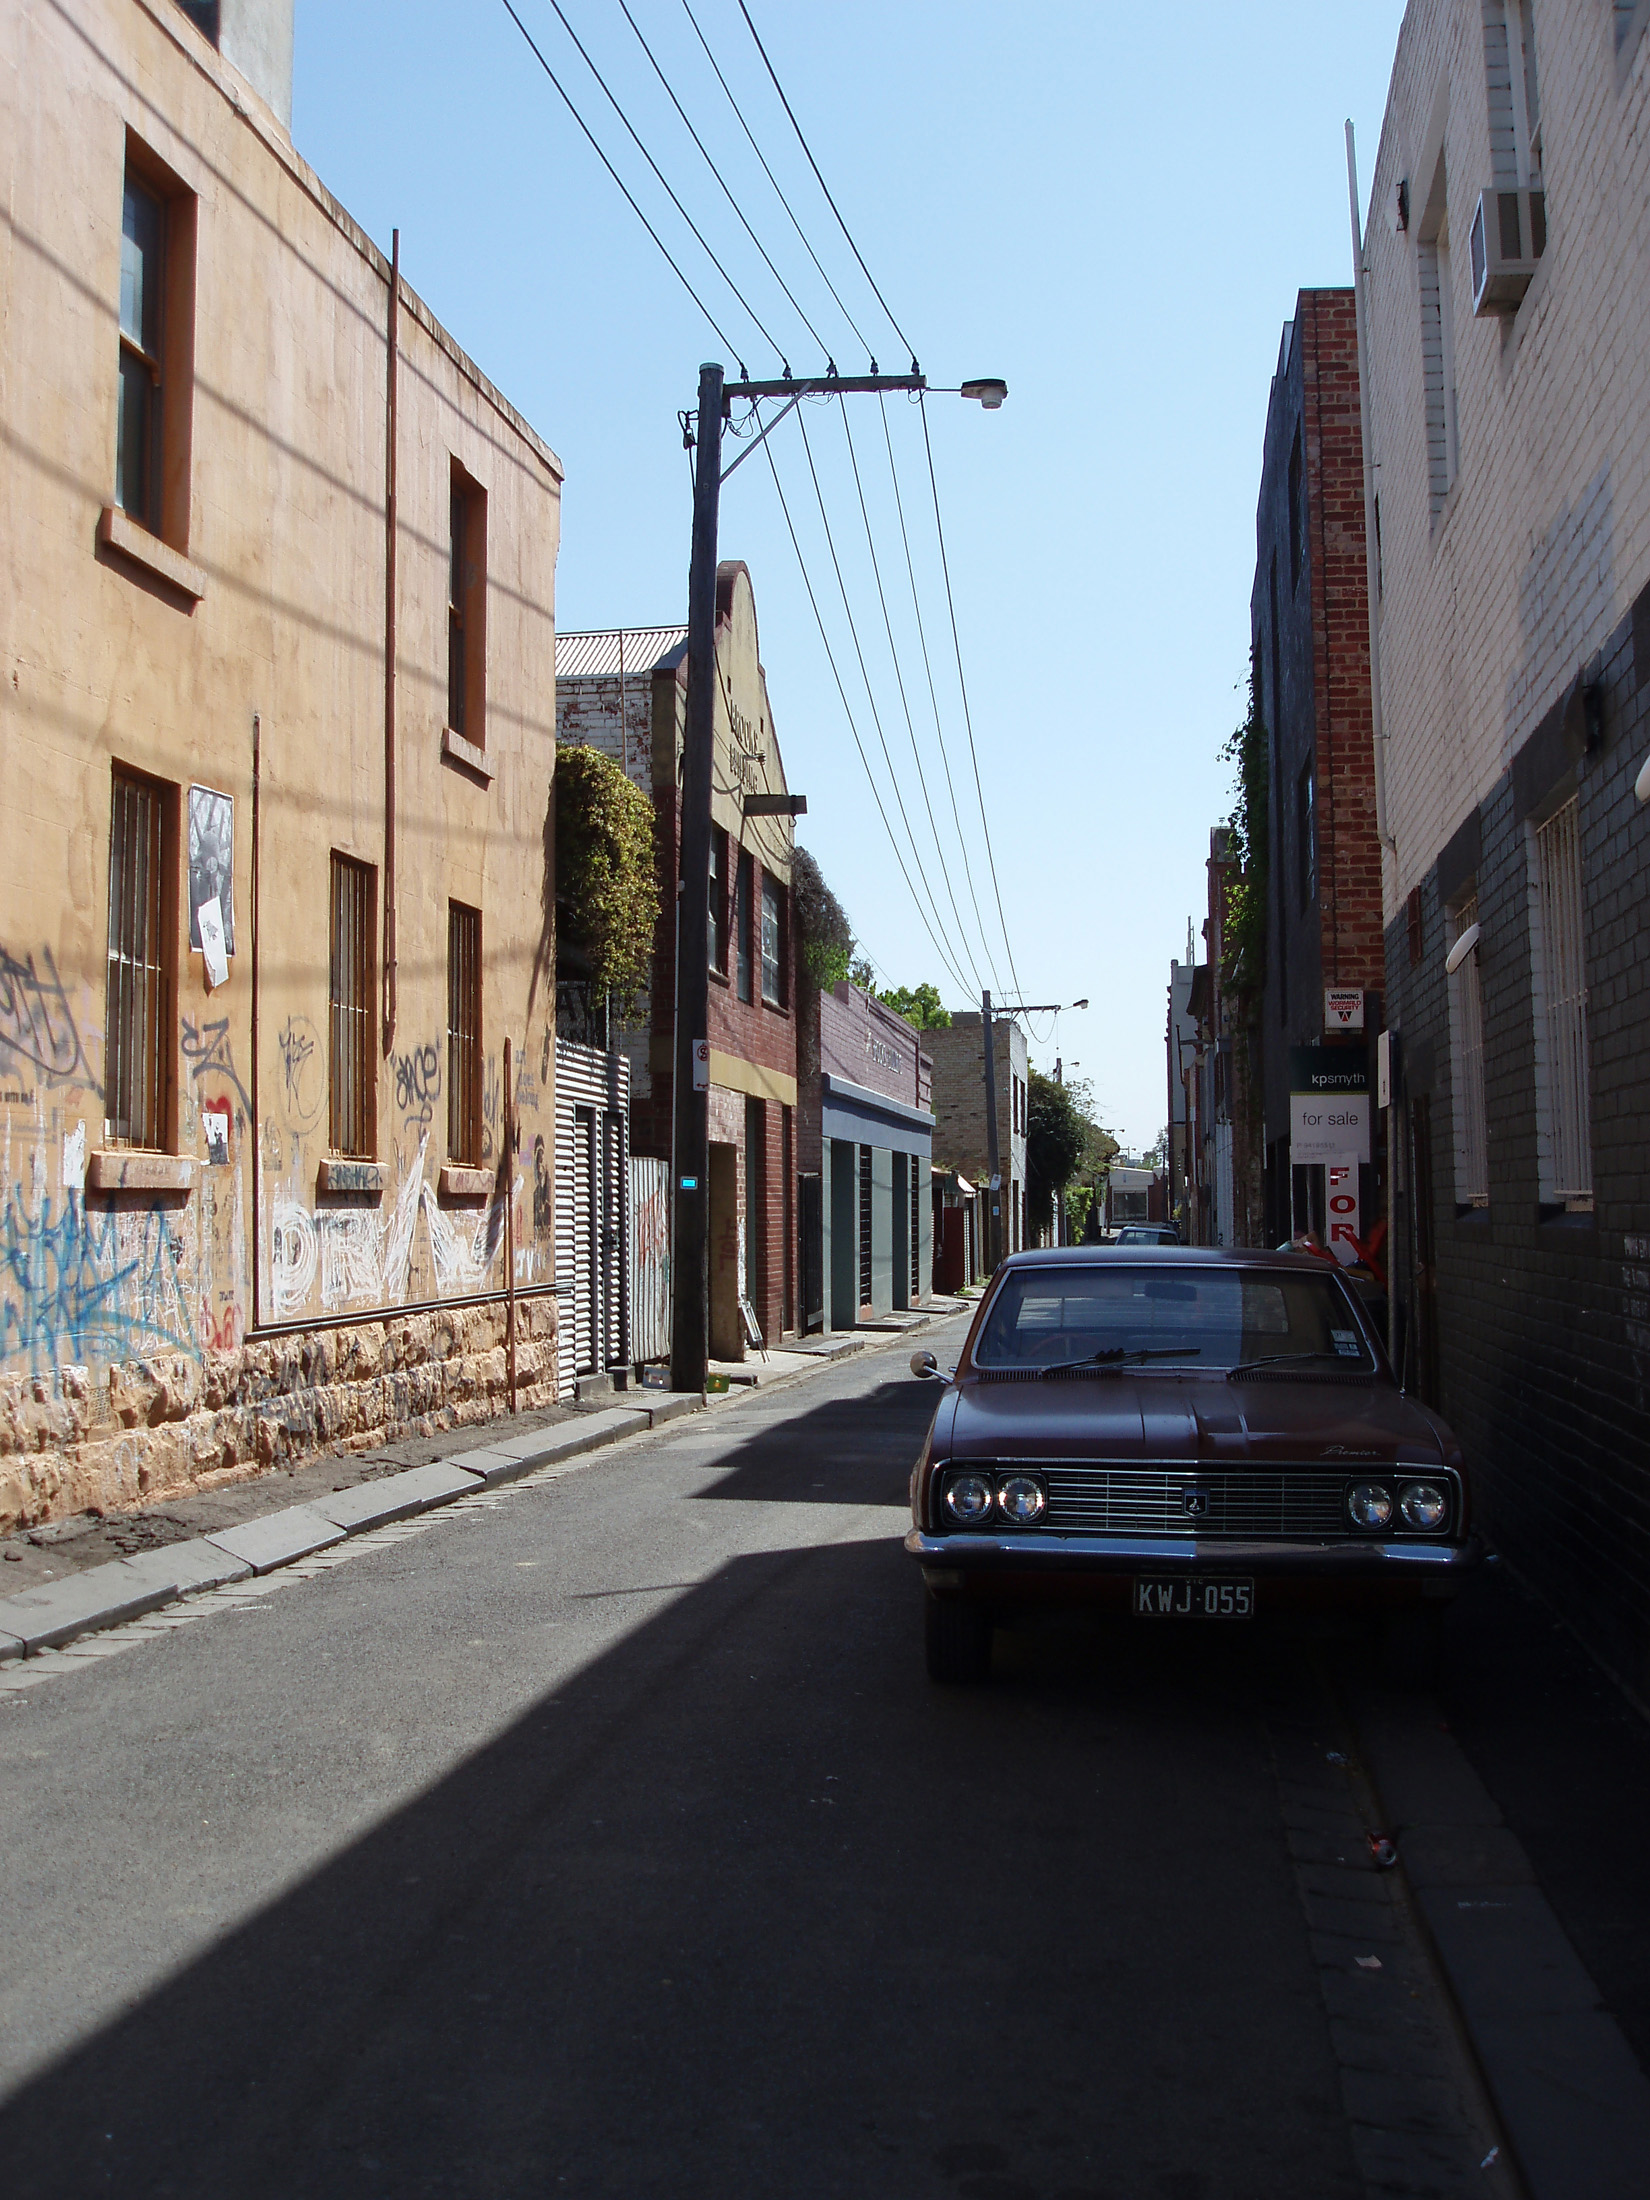 Car Parking at Fitzroy Street Between Vintage Tall Buildings at Melbourne. Captured at Morning Time.